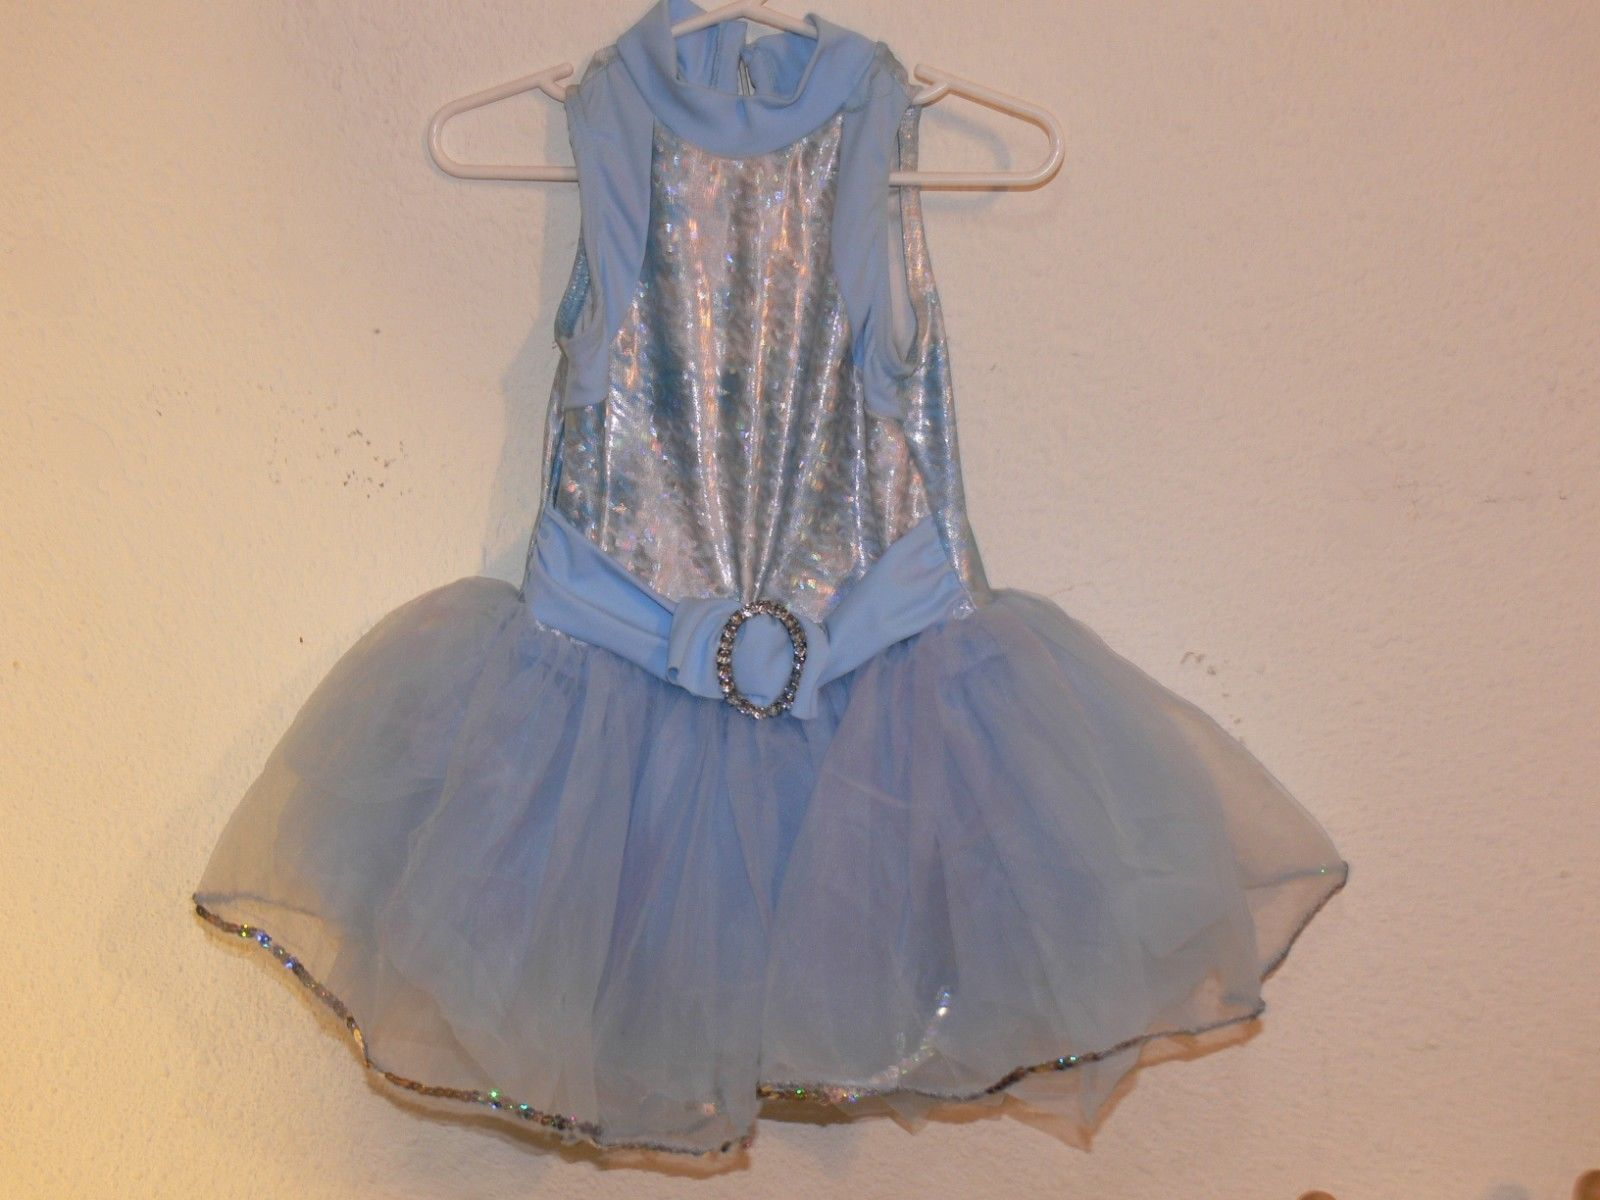 Primary image for Light Blue Dance Dress Leotard Tutu Skirt Ballet Costume Girls Size SC jw